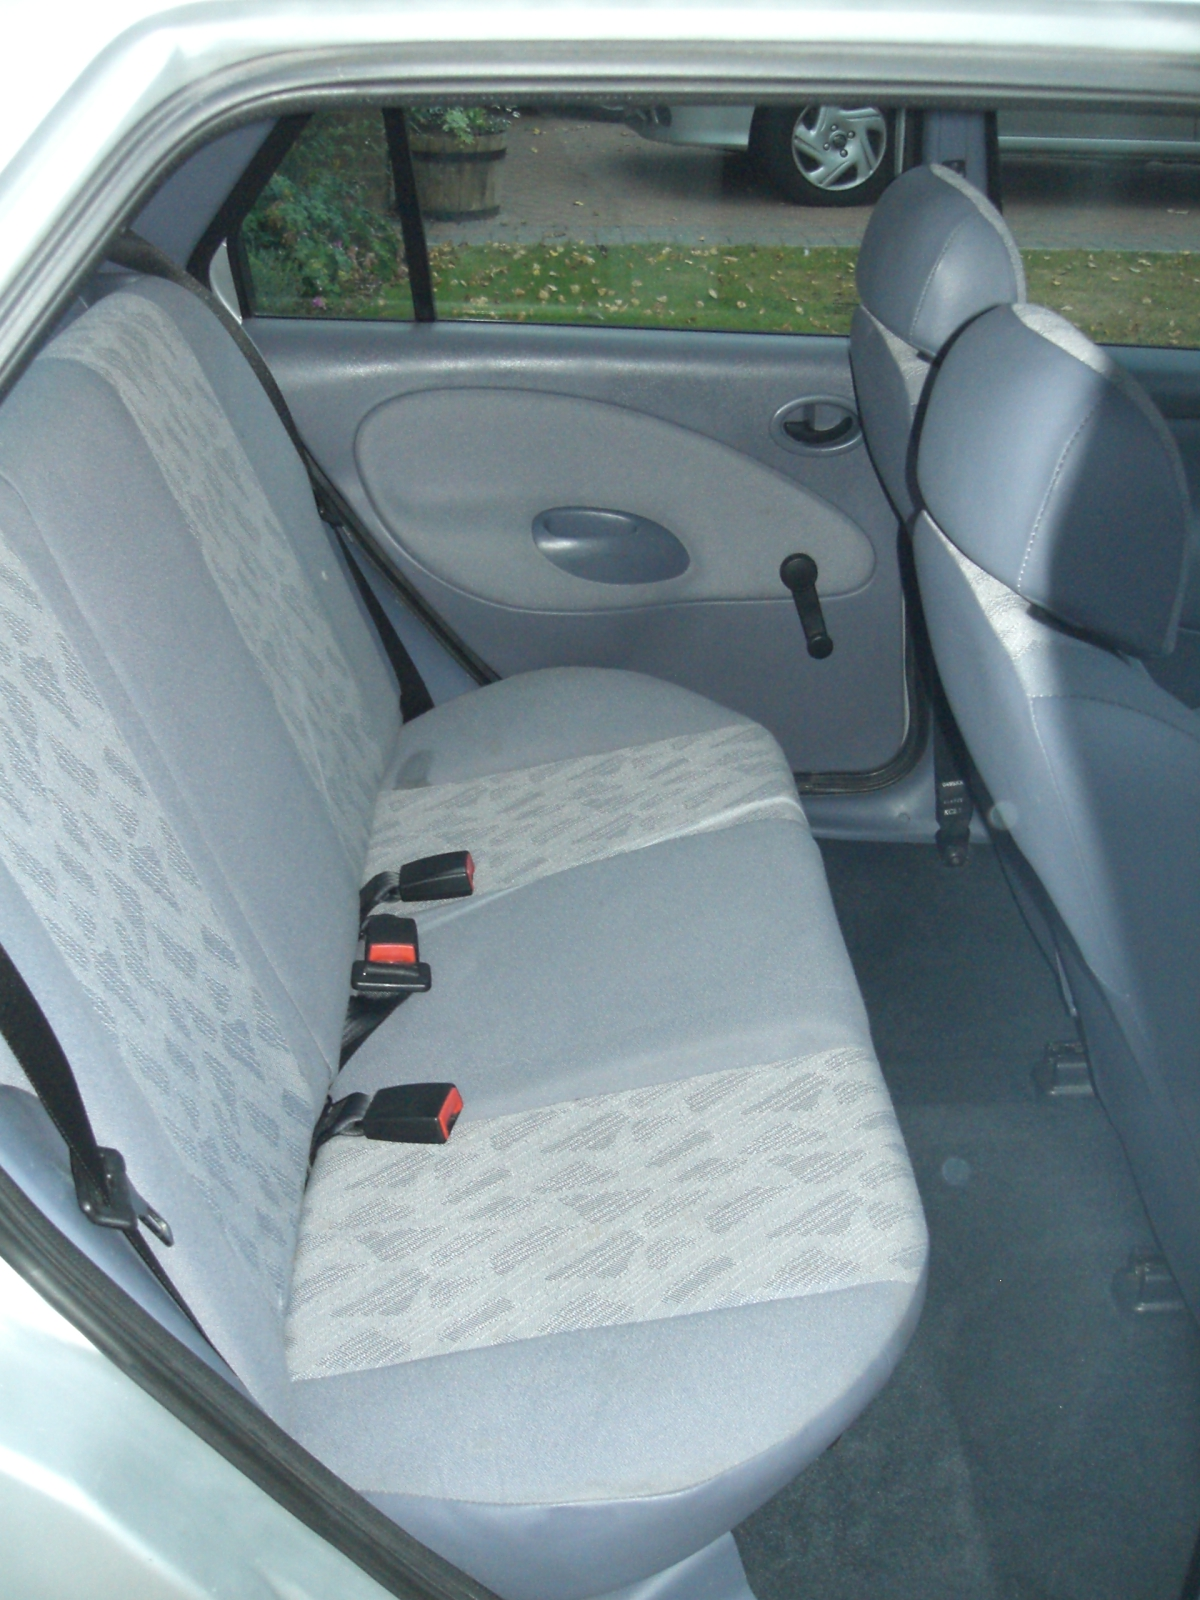 Rear seats of Ford Fiesta 1.3 1997